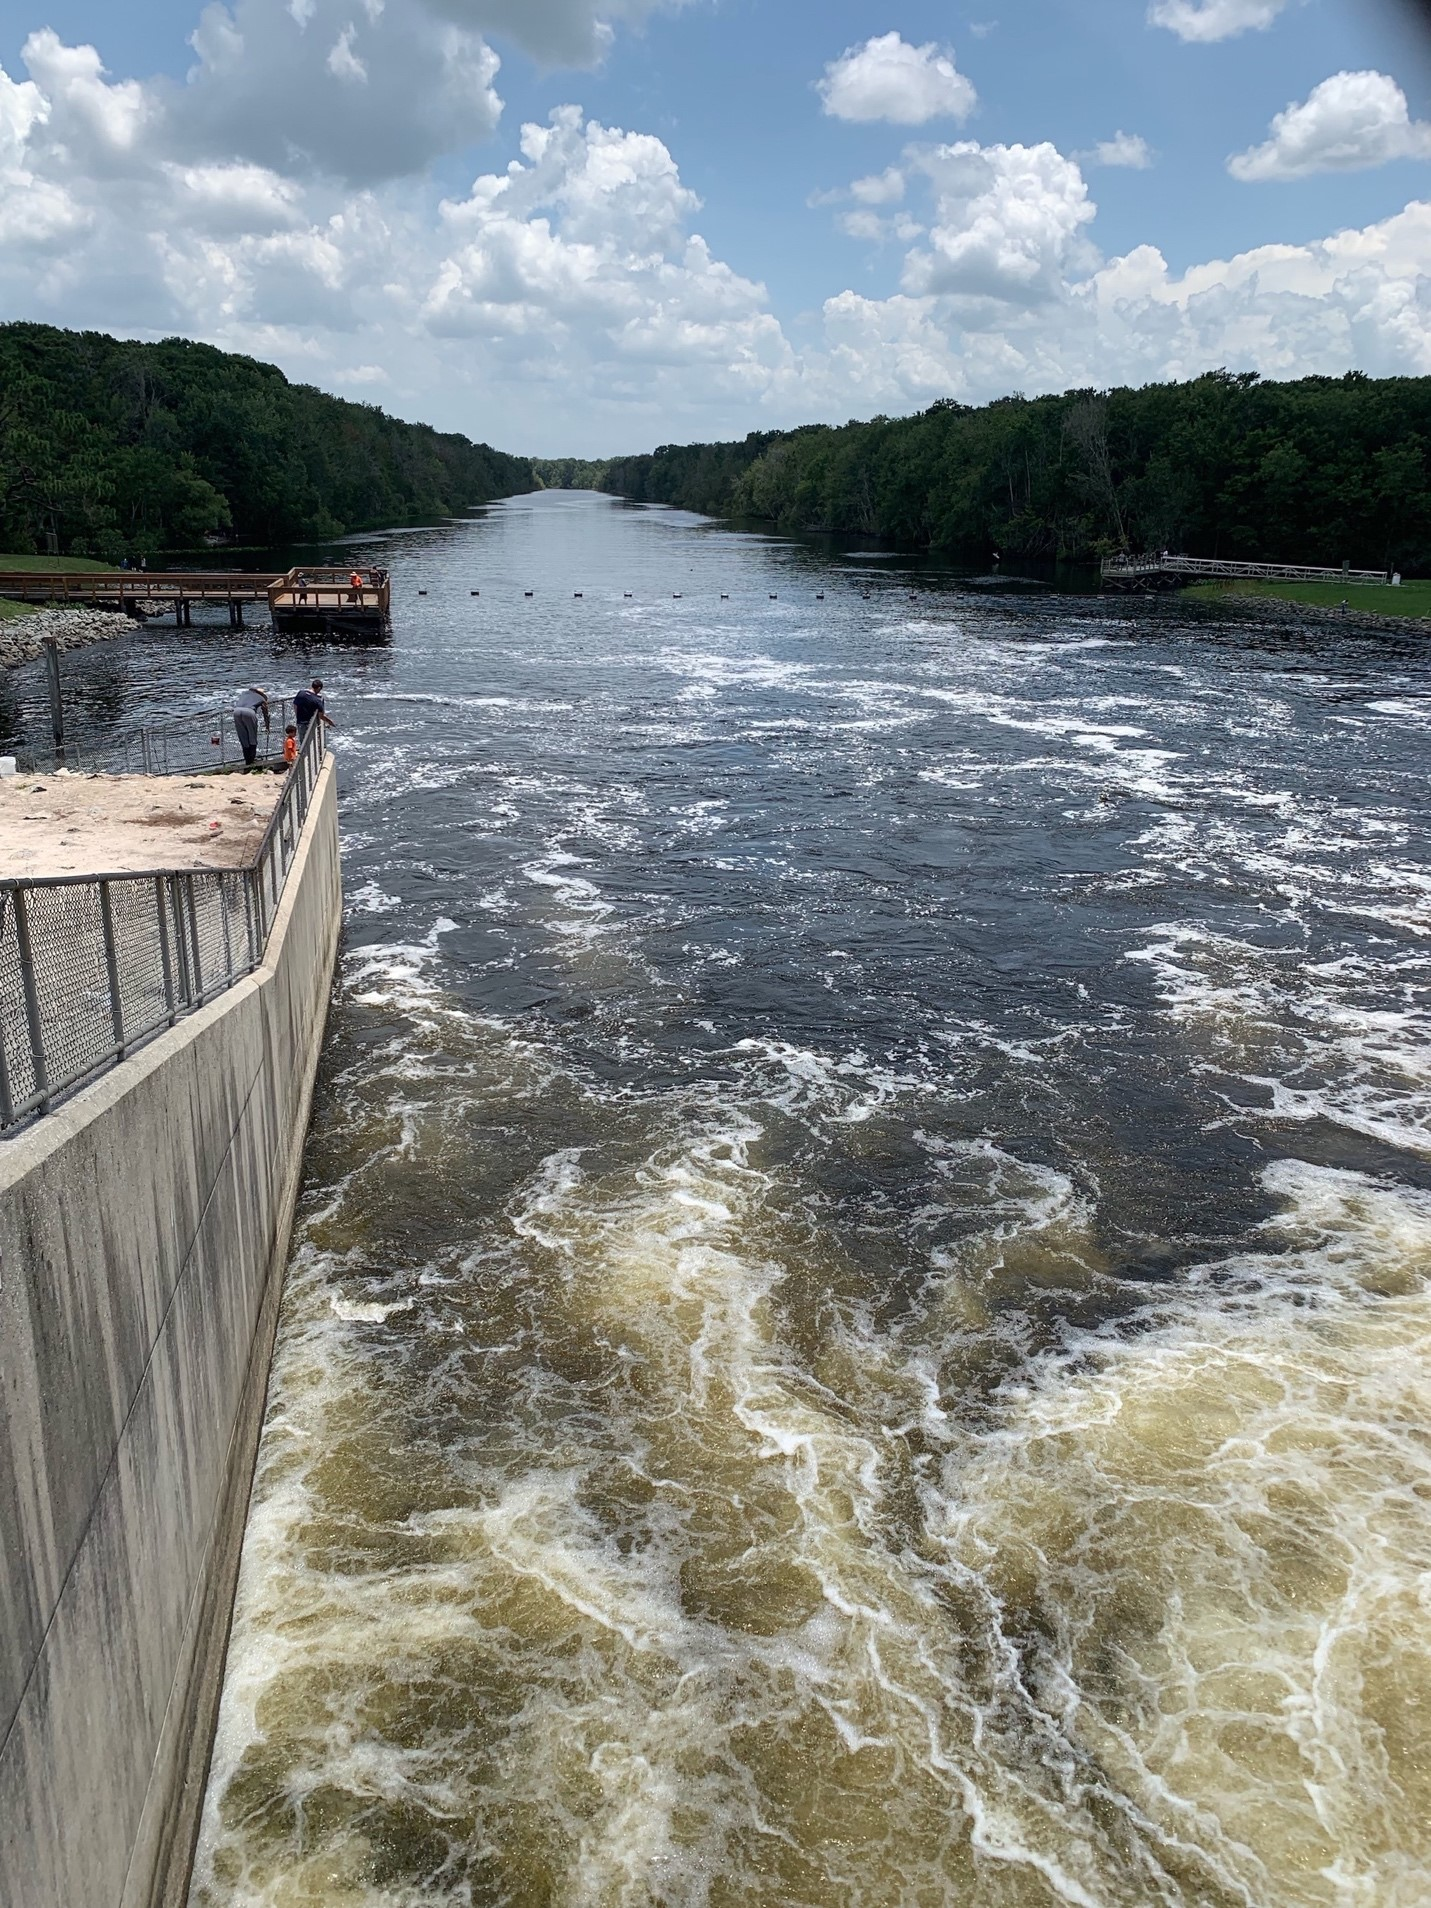 Churning water from the Rodman Reservoir enters the Ocklawaha River, where families fish from shore